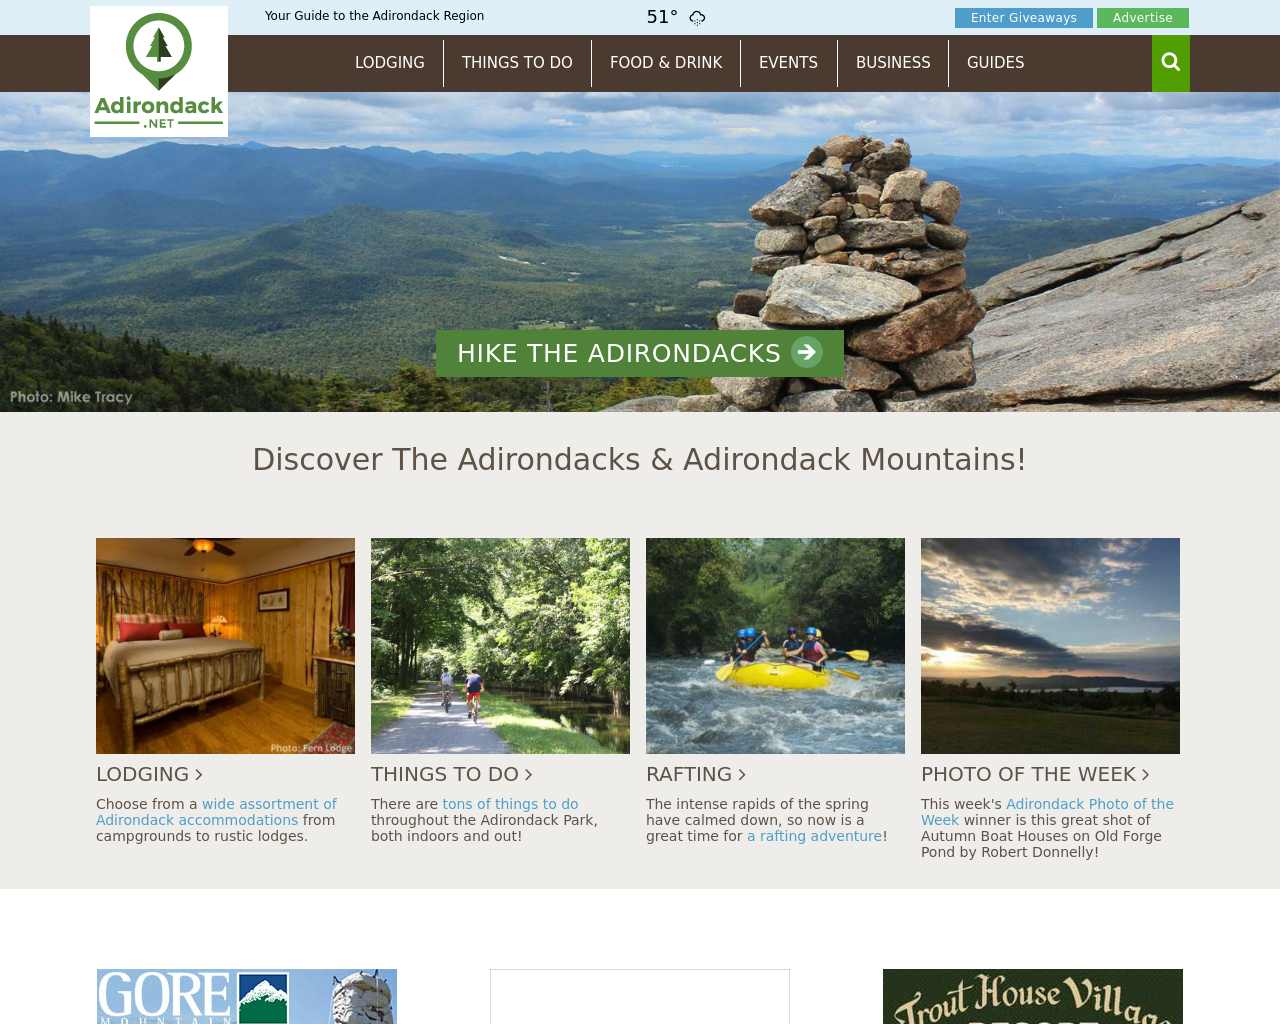 Adirondack-Advertising-Reviews-Pricing